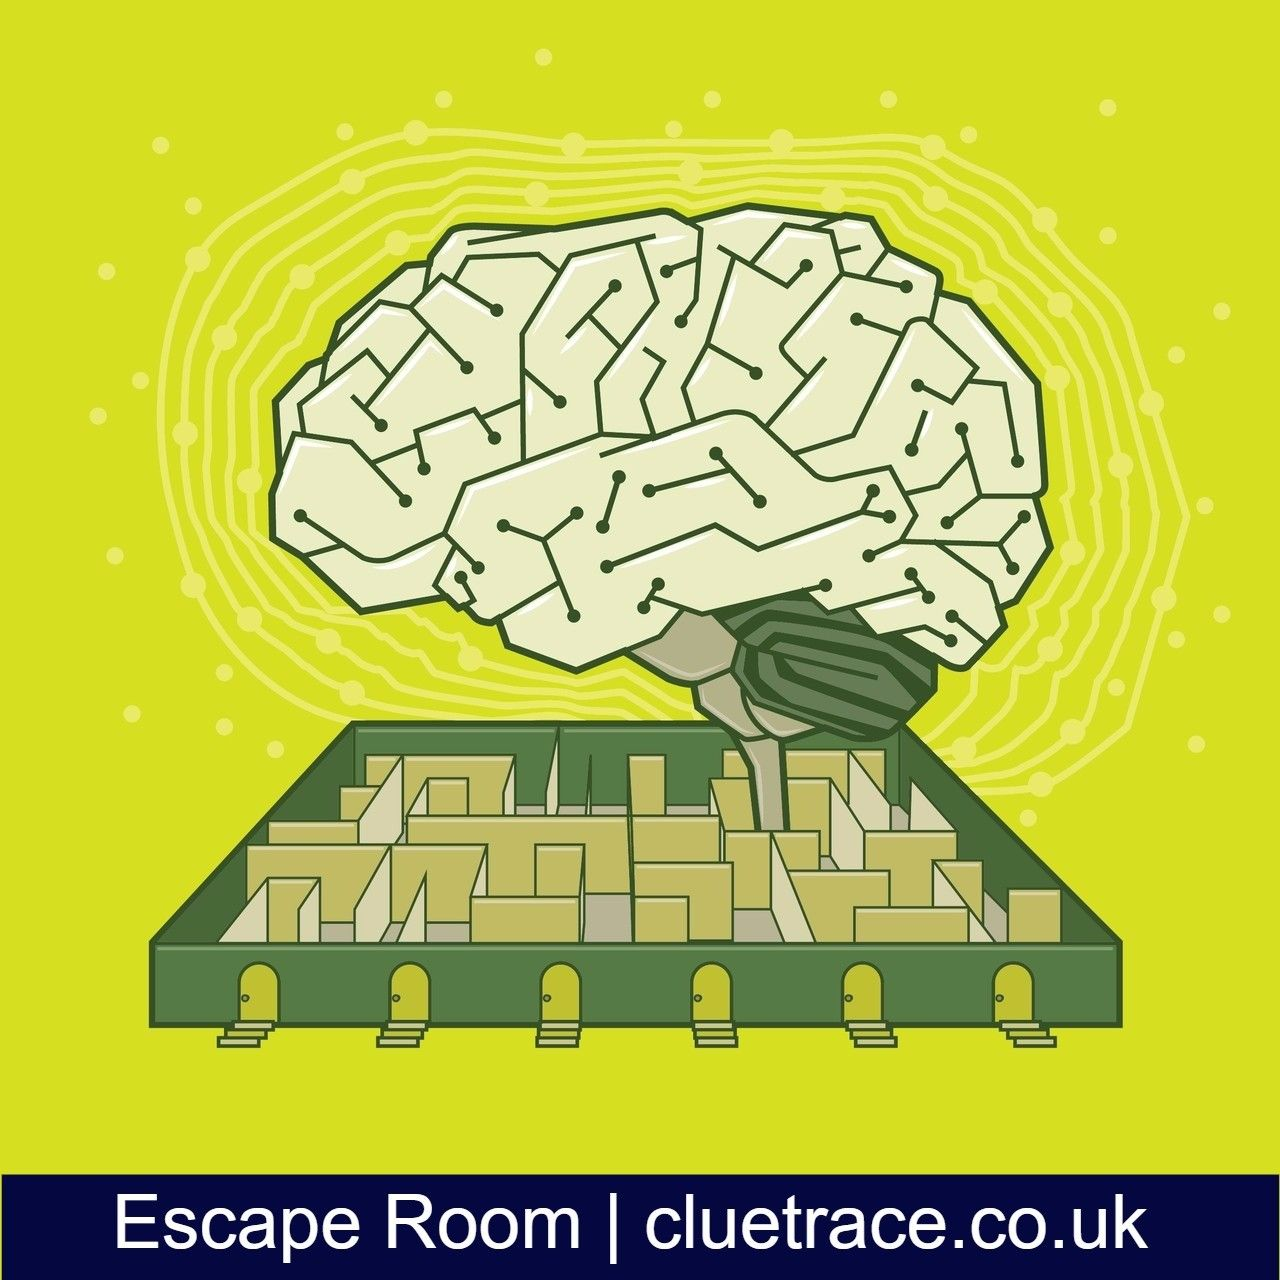 Cluetrace is the new exciting live escape game in #London. #escapegame   http://wu.to/U3ljmJ